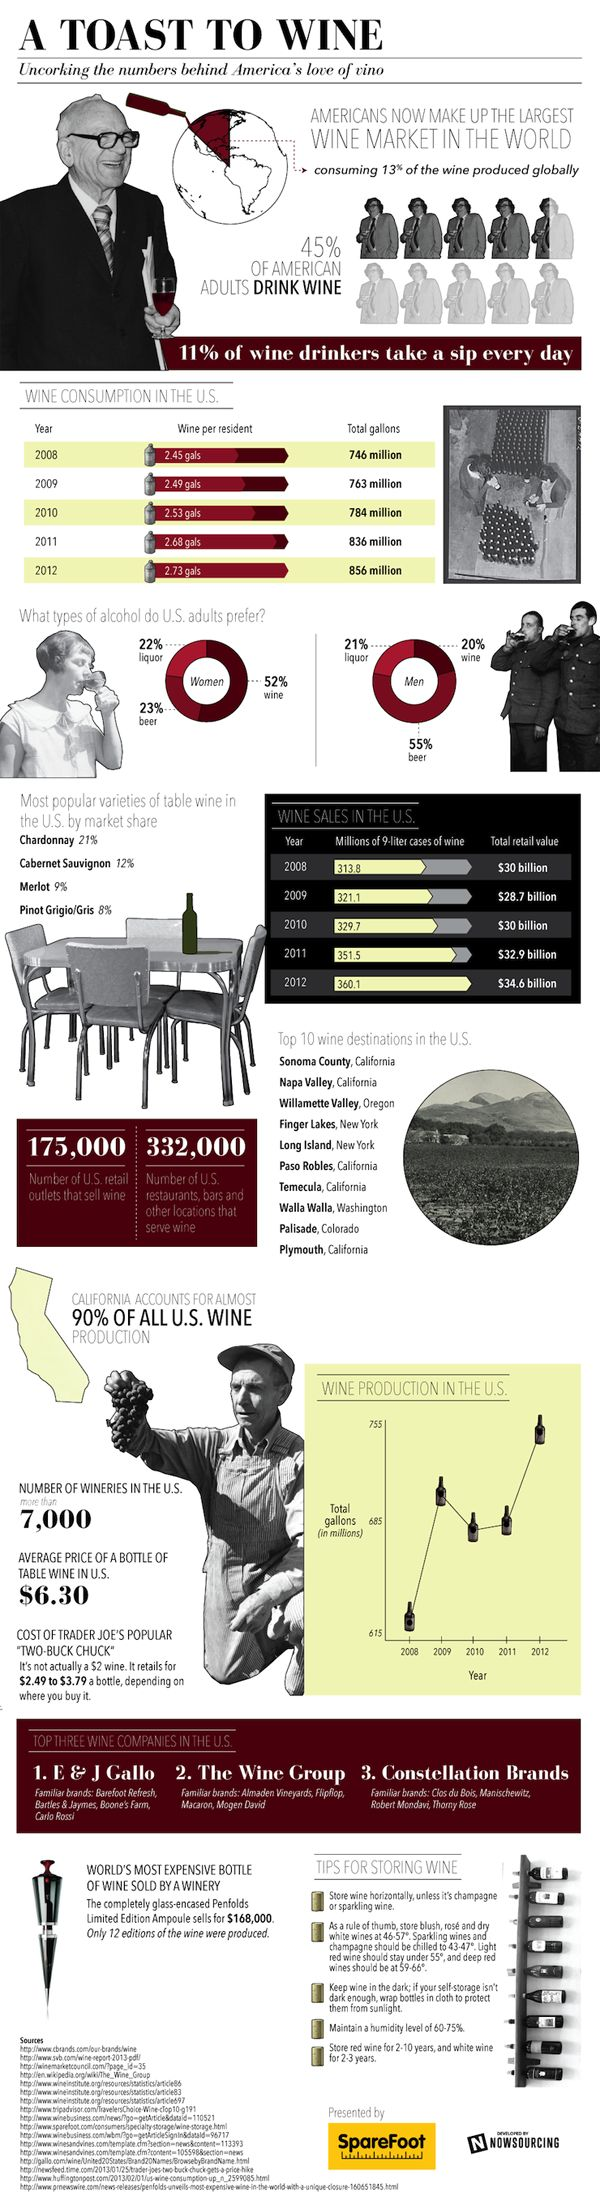 Interesting facts about drinking wine in America.